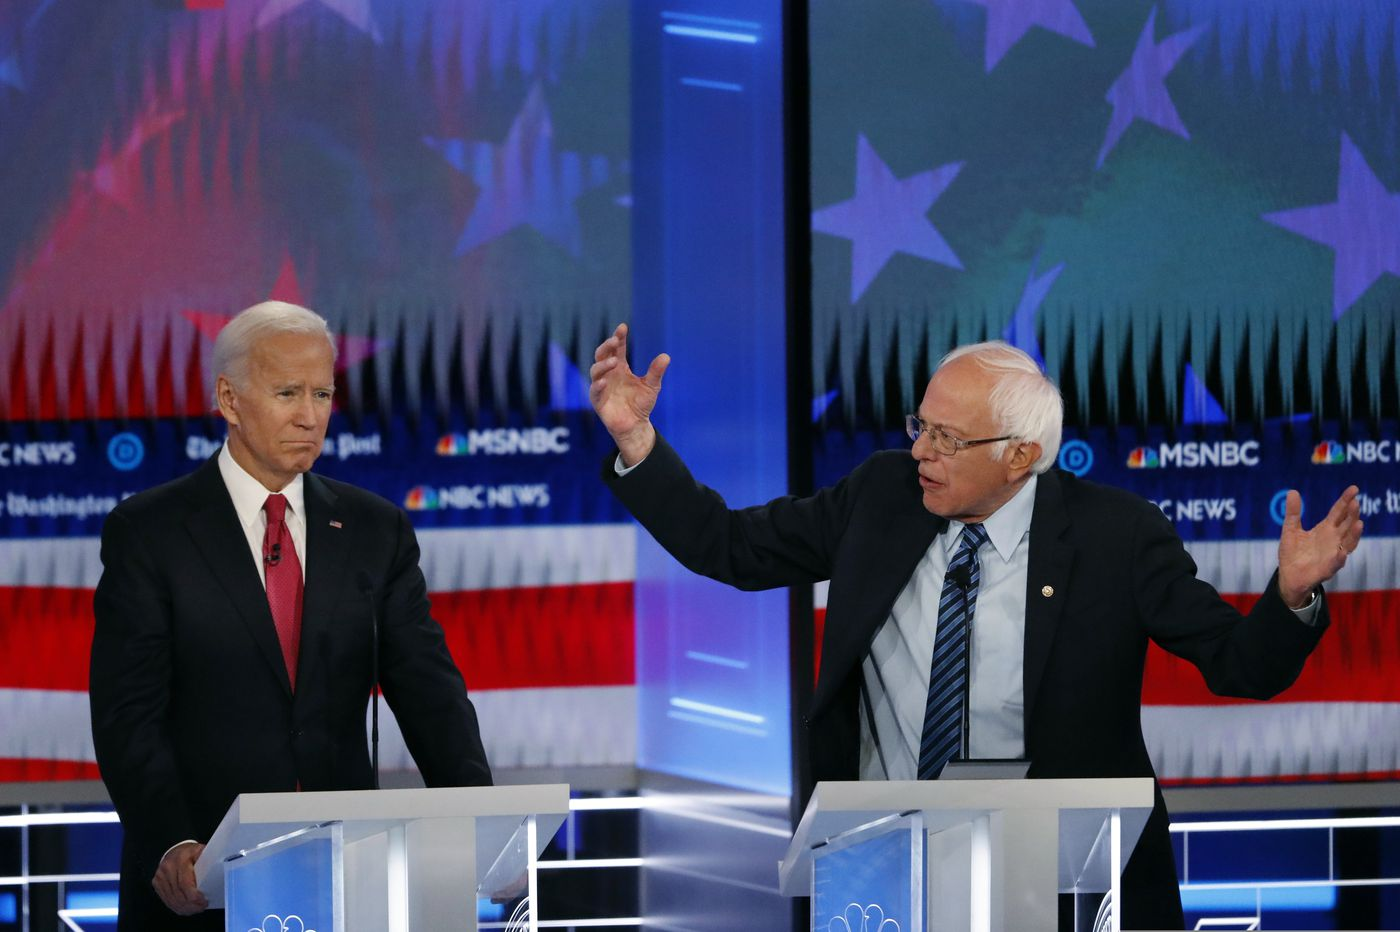 Democratic candidates agree at debate: Impeach Trump, but we've got more to talk about